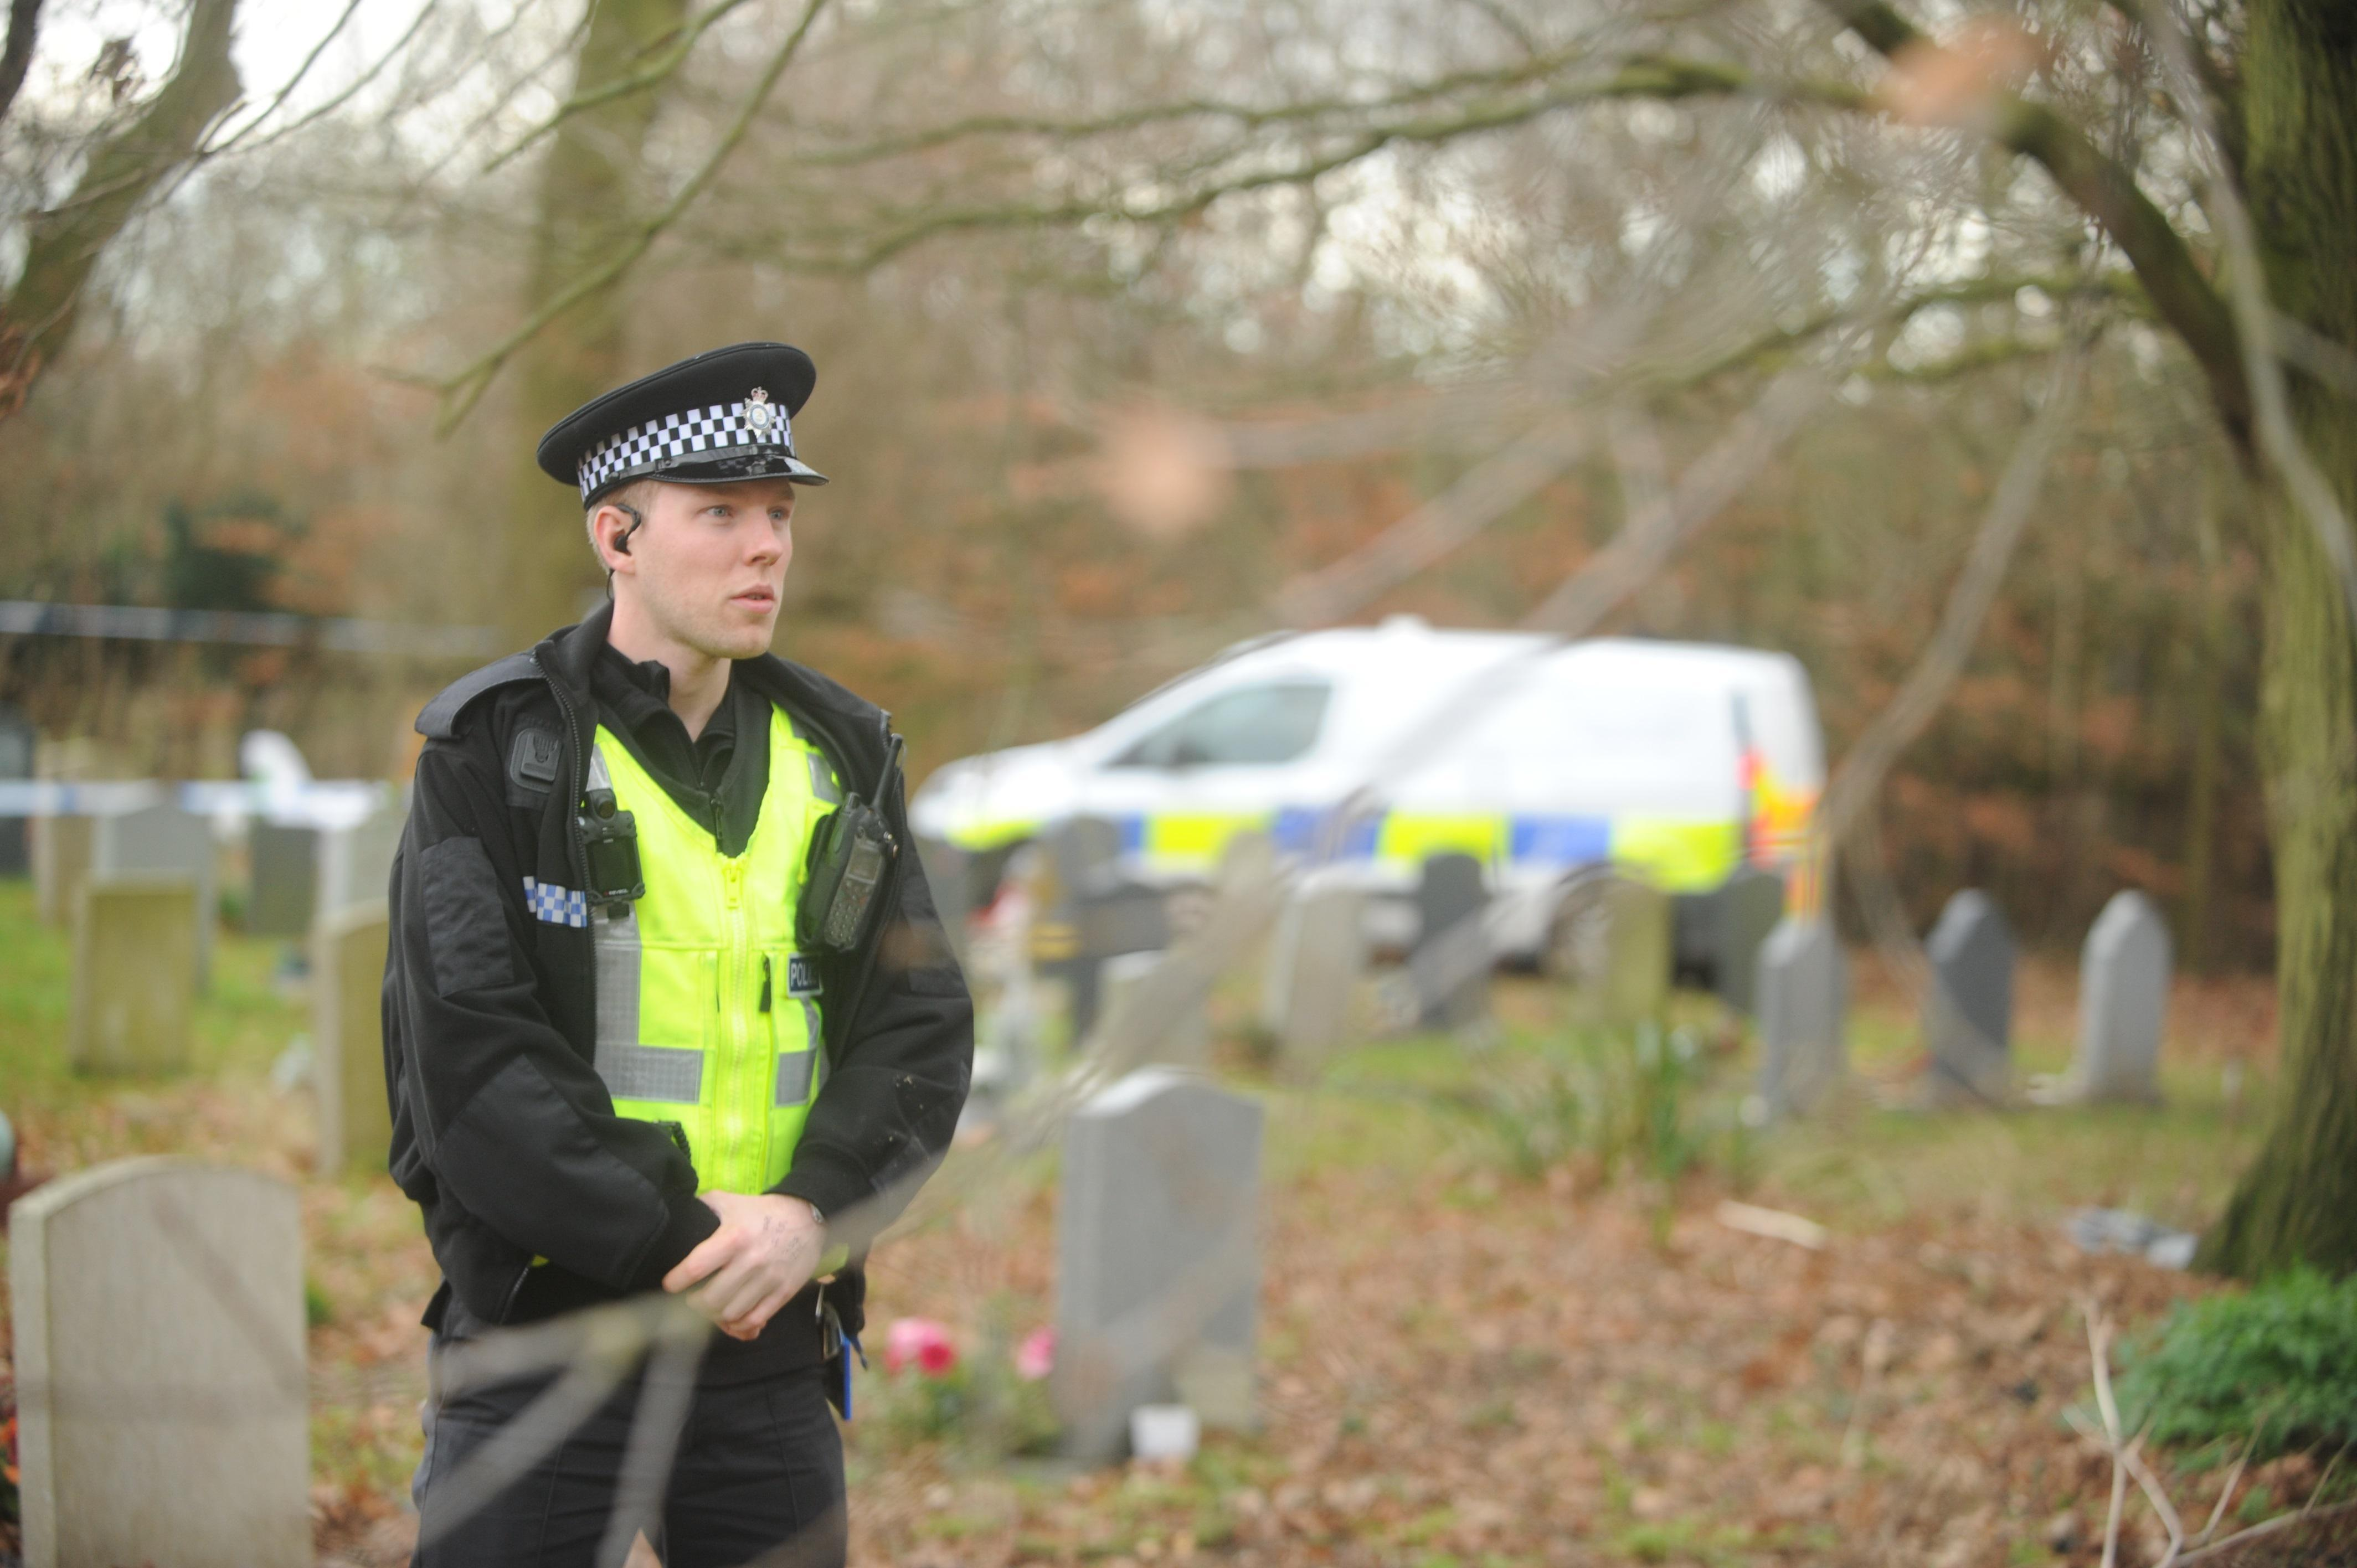 Mystery as child's grave is found 'disturbed' prompting cops to seal off cemetery